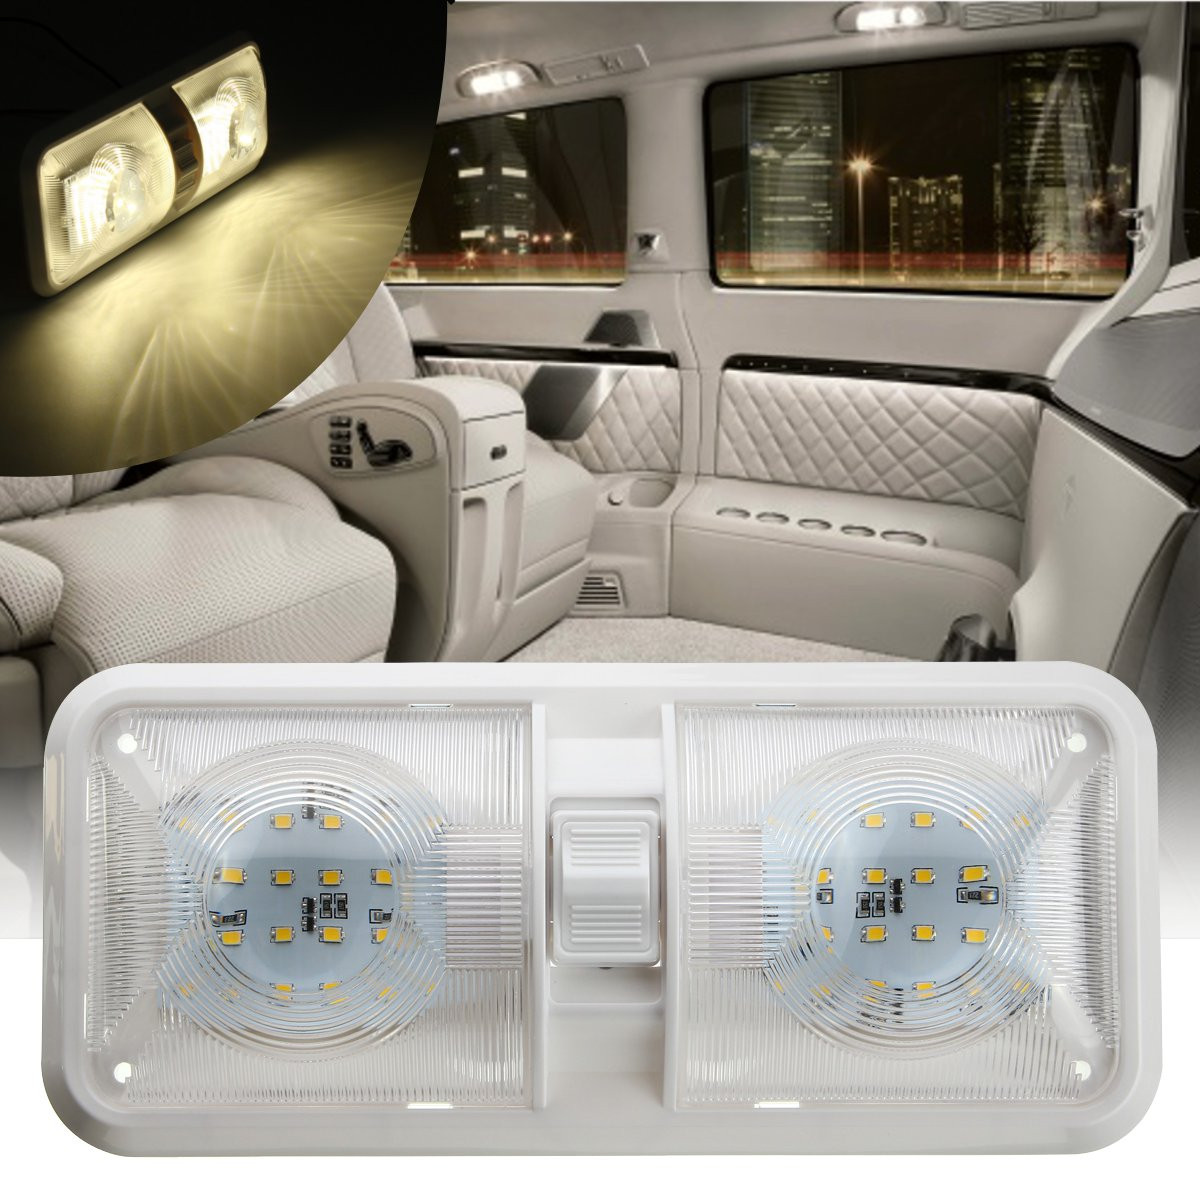 12v 48led 2835 Smd Interior Double Dome Ceiling Light Switch For Rv Boat Camper Trailer Alex Nld